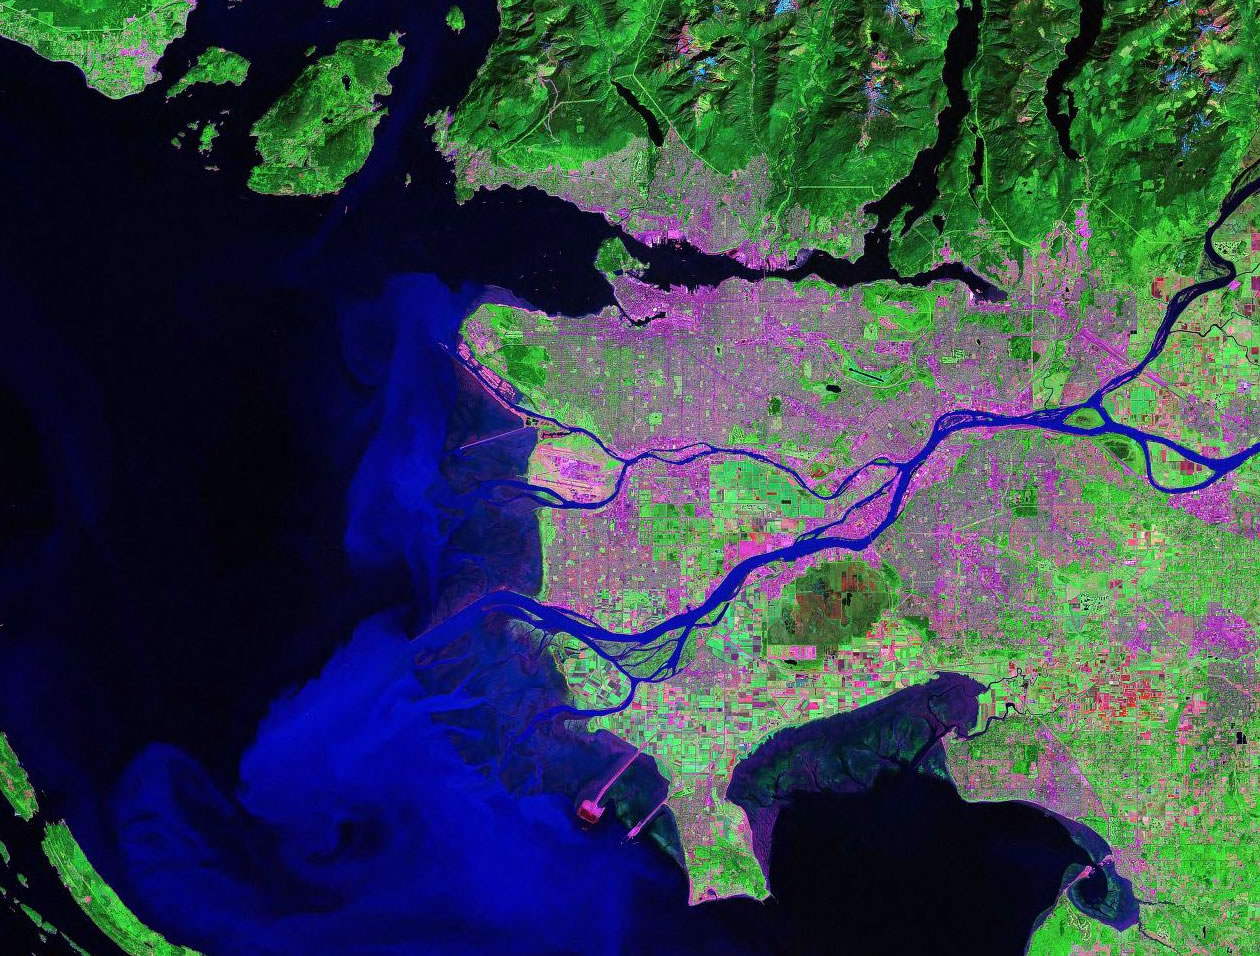 Vancouver Canada satellite image map